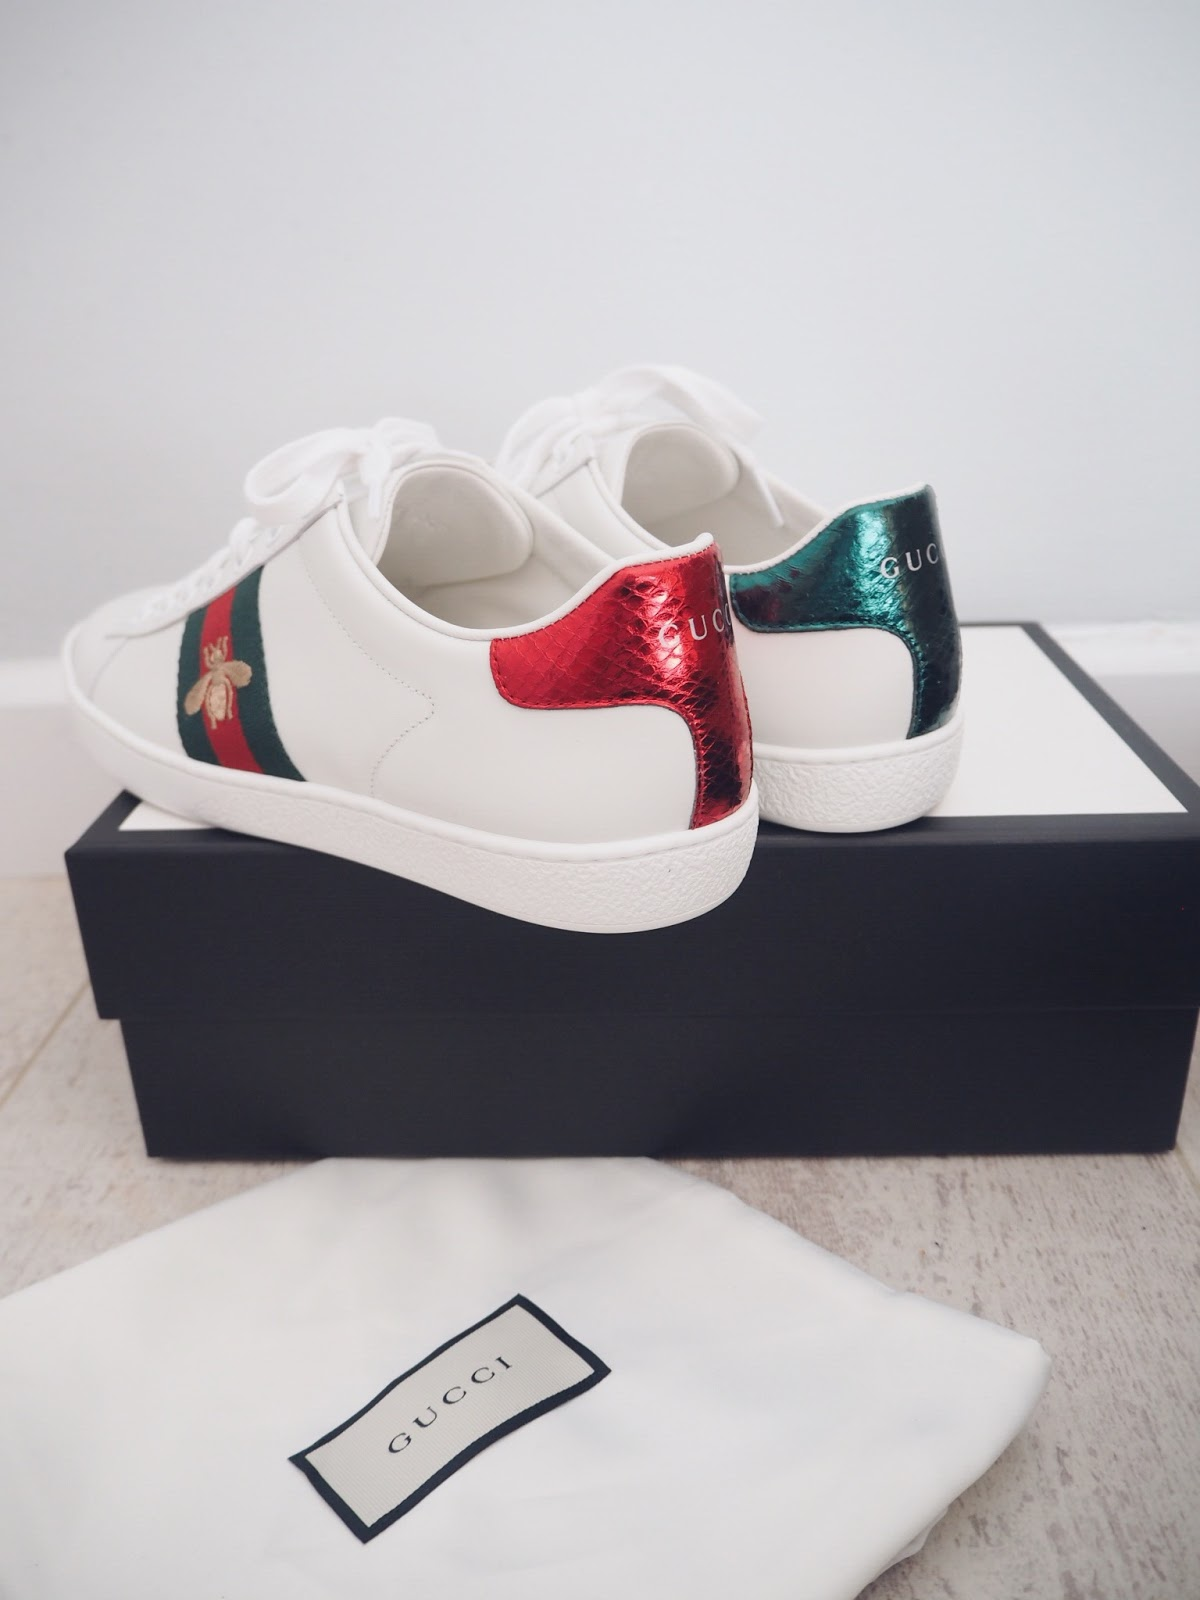 f55b1f6f13d GUCCI ACE EMBROIDERED SNEAKERS- FIRST IMPRESSIONS